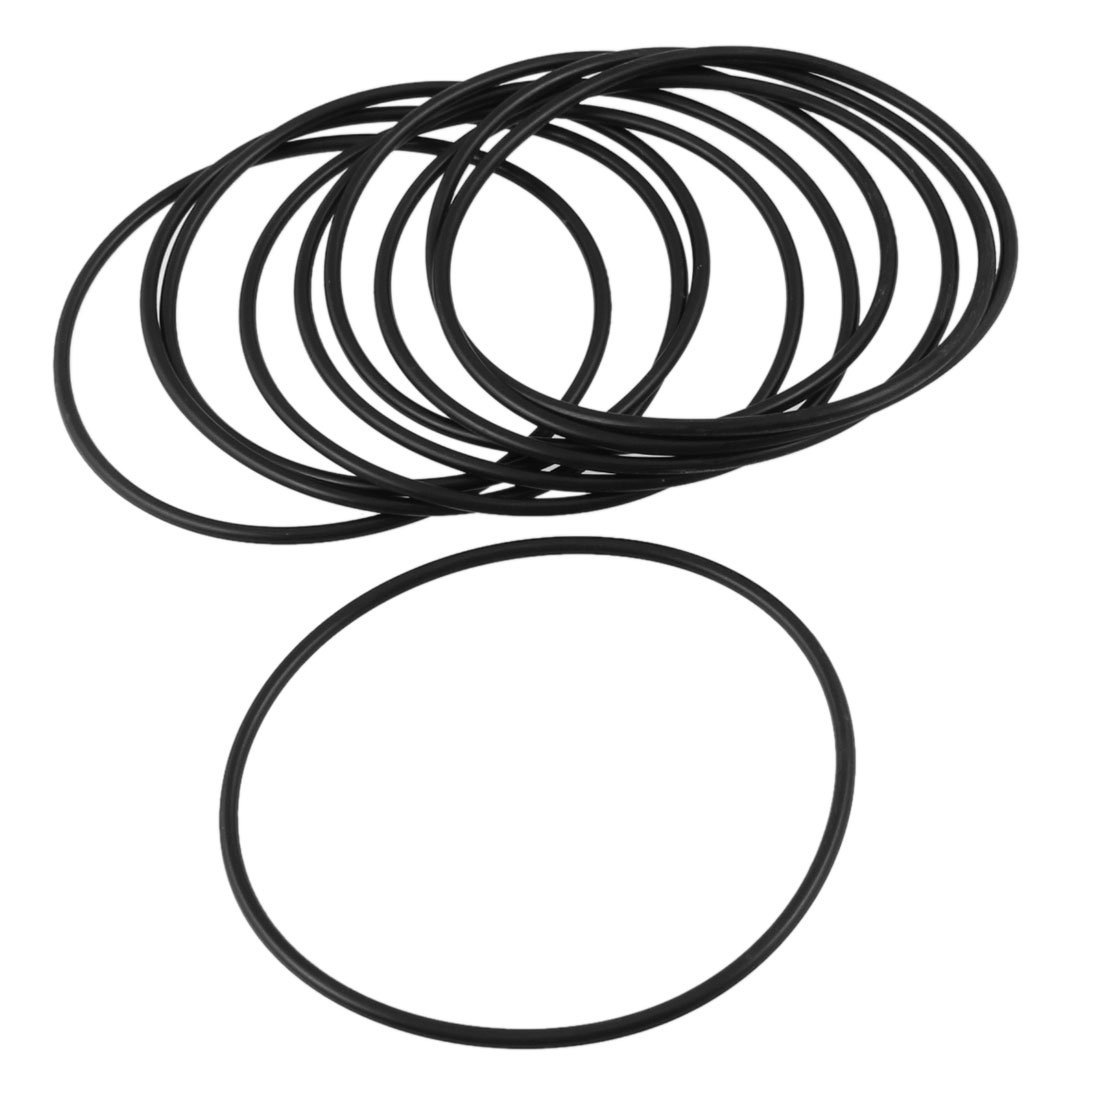 uxcell 2.5x75mm Black Nitrile Rubber Sealing O Ring Seal Grommets 10 Pcs